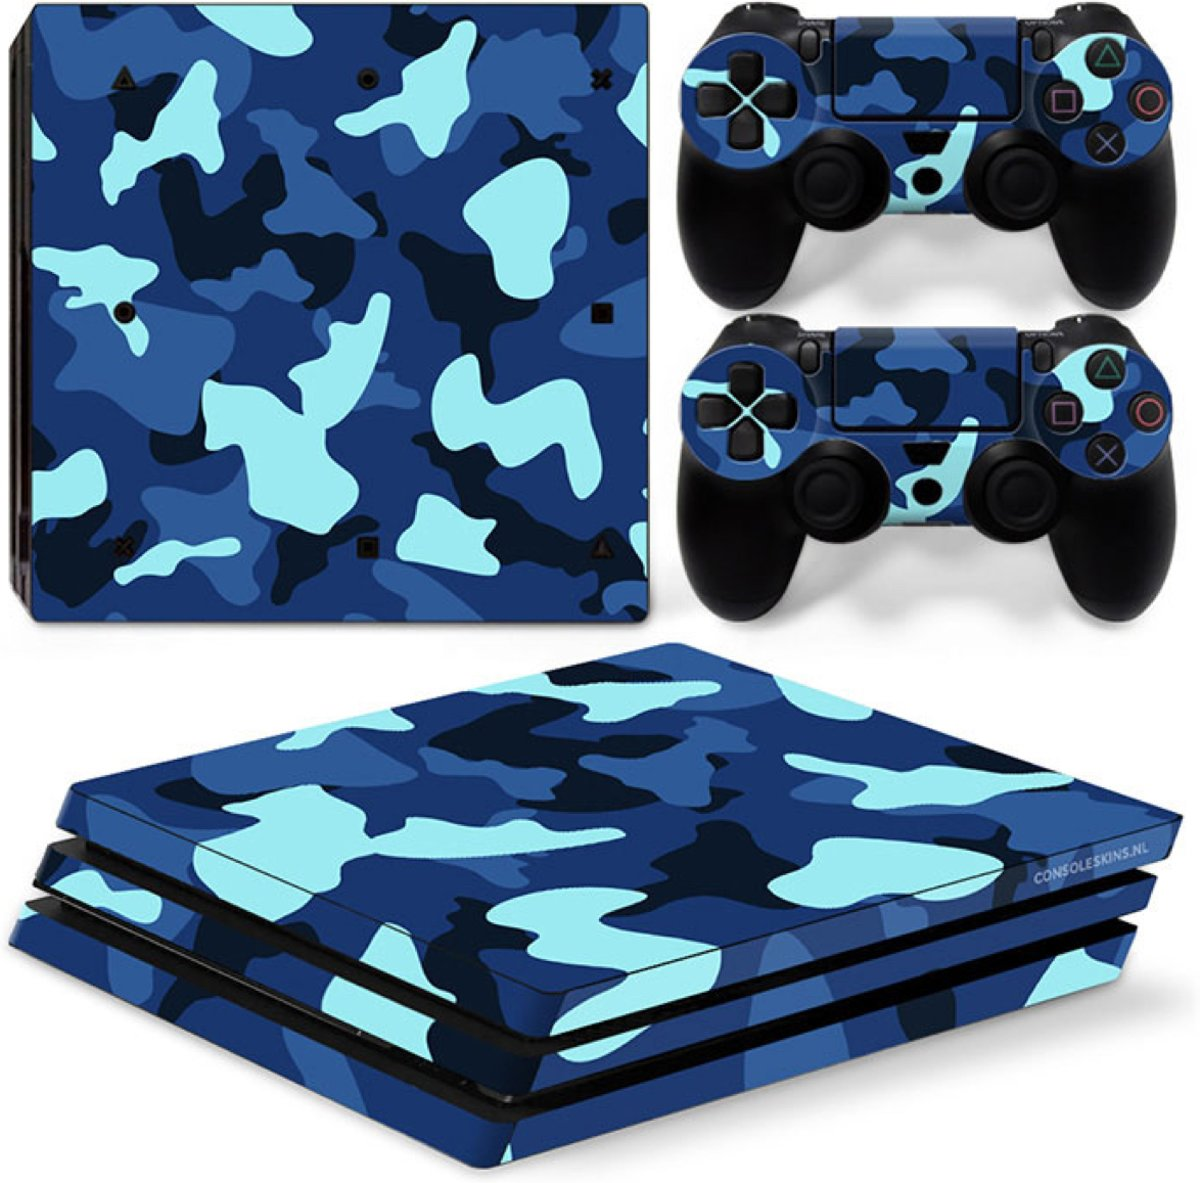 Army Camo / Blauw Zwart - PS4 Pro Console Skins PlayStation Stickers